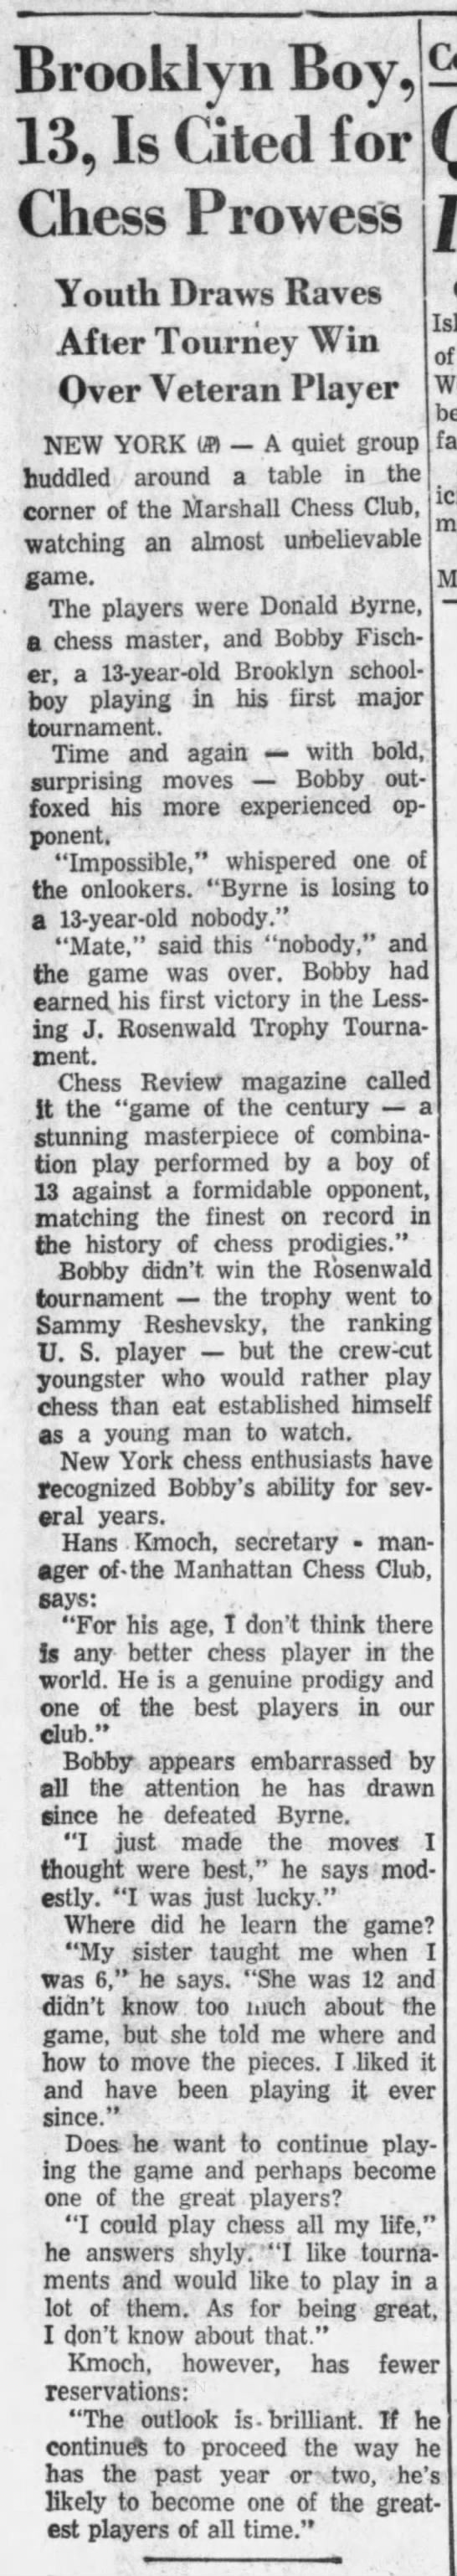 Brooklyn Boy, 13, Is Cited for Chess Prowess - Brooklyn Boy, 13, Is Cited for Chess Prowess ....